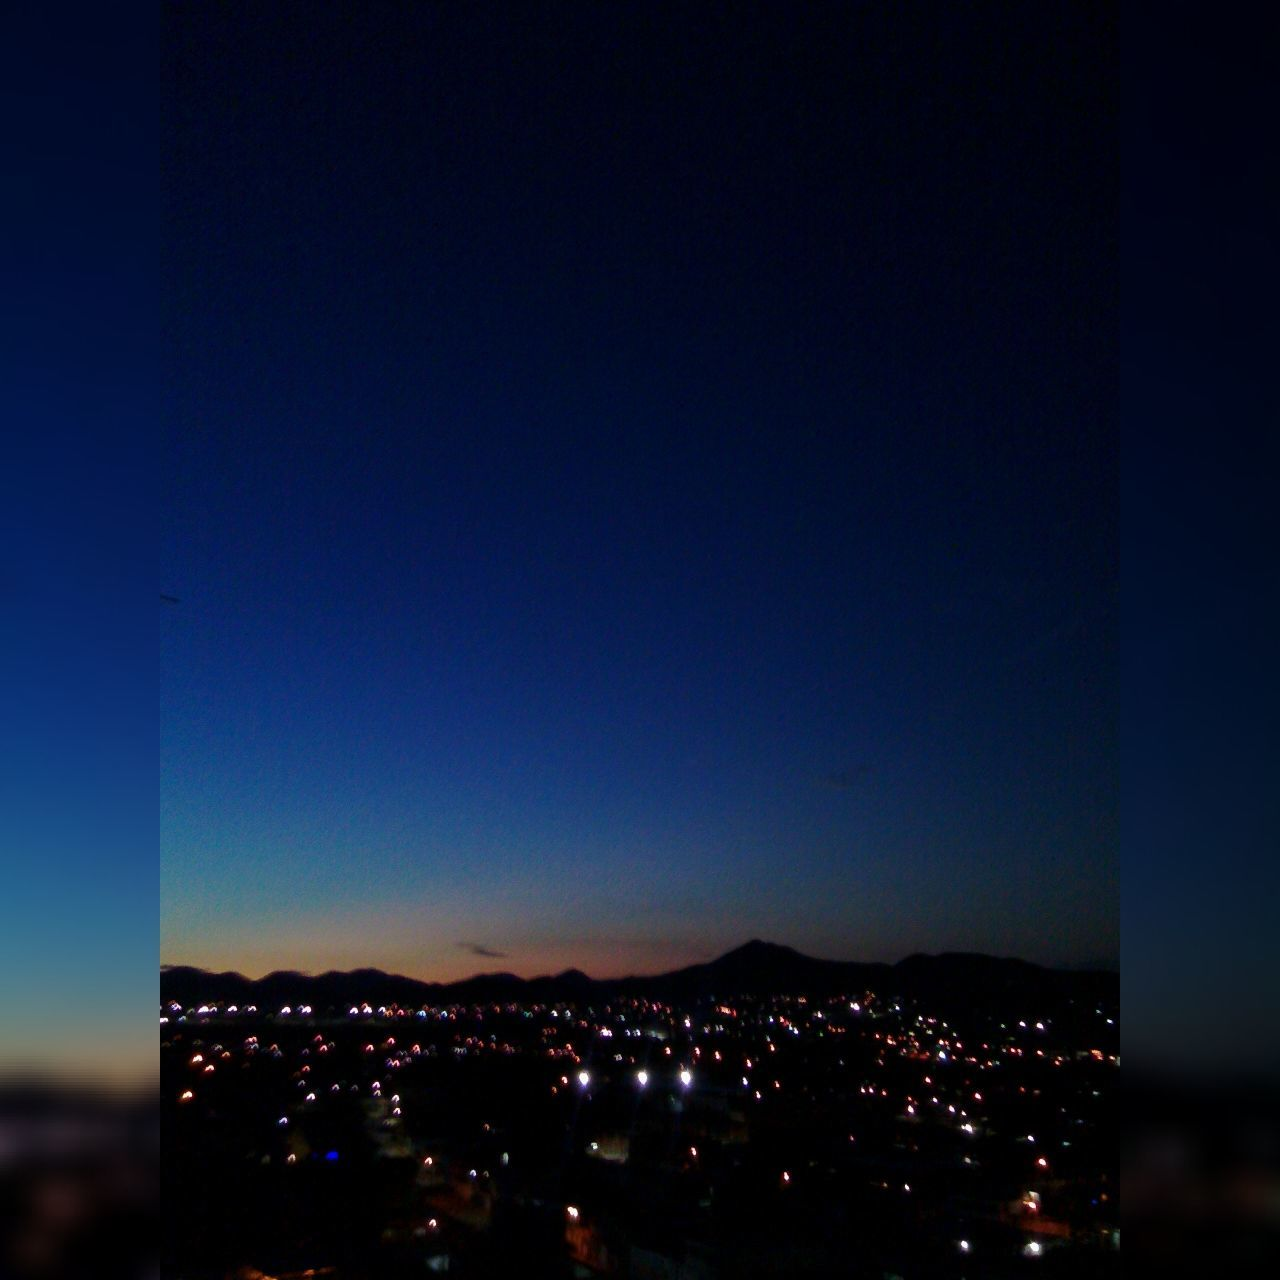 B A R Q U I S I M E TO O R N I G H T. Blue City City Life Cityscape Clear Sky Dark Illuminated Modern Mountain Range Night Sky